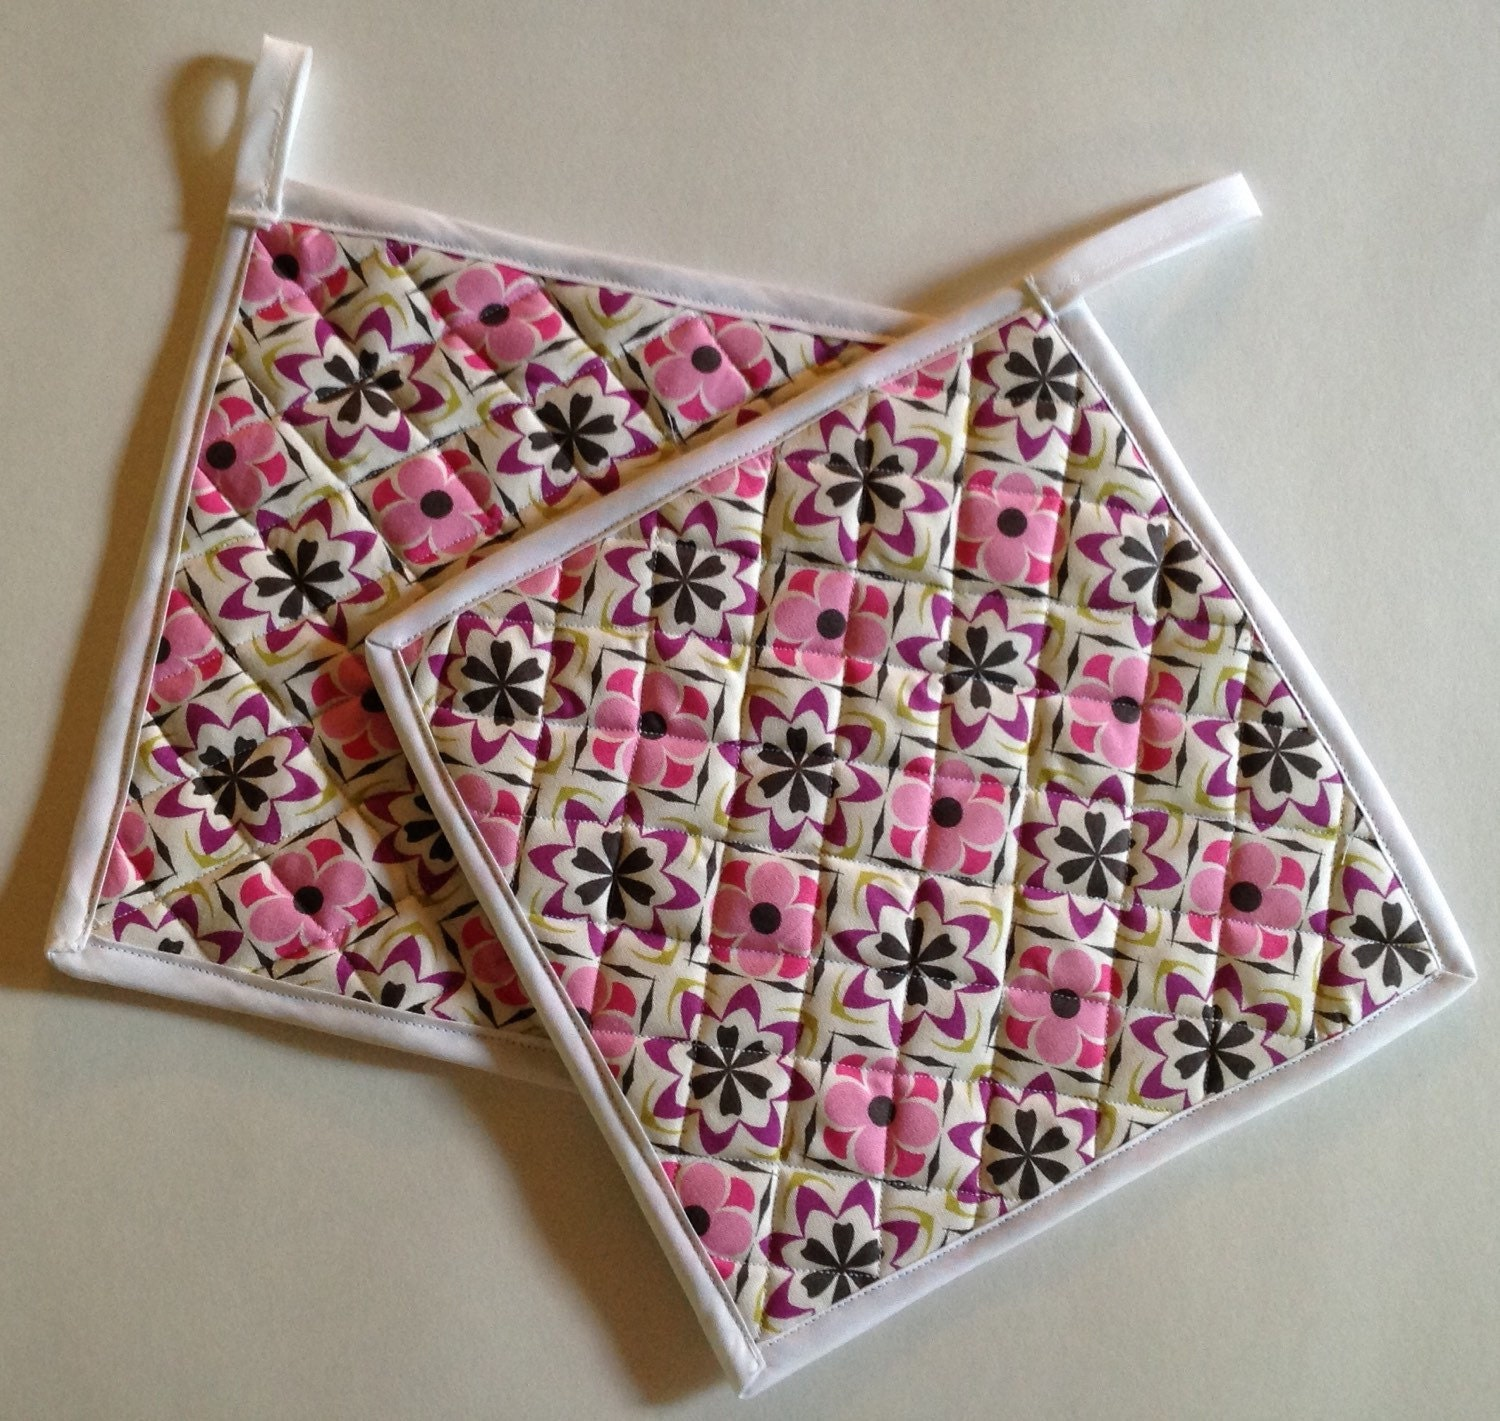 Set of 2 Quilted Potholders, Fabric Pot Holders, Pink/Black/White ... : quilted pot holders - Adamdwight.com